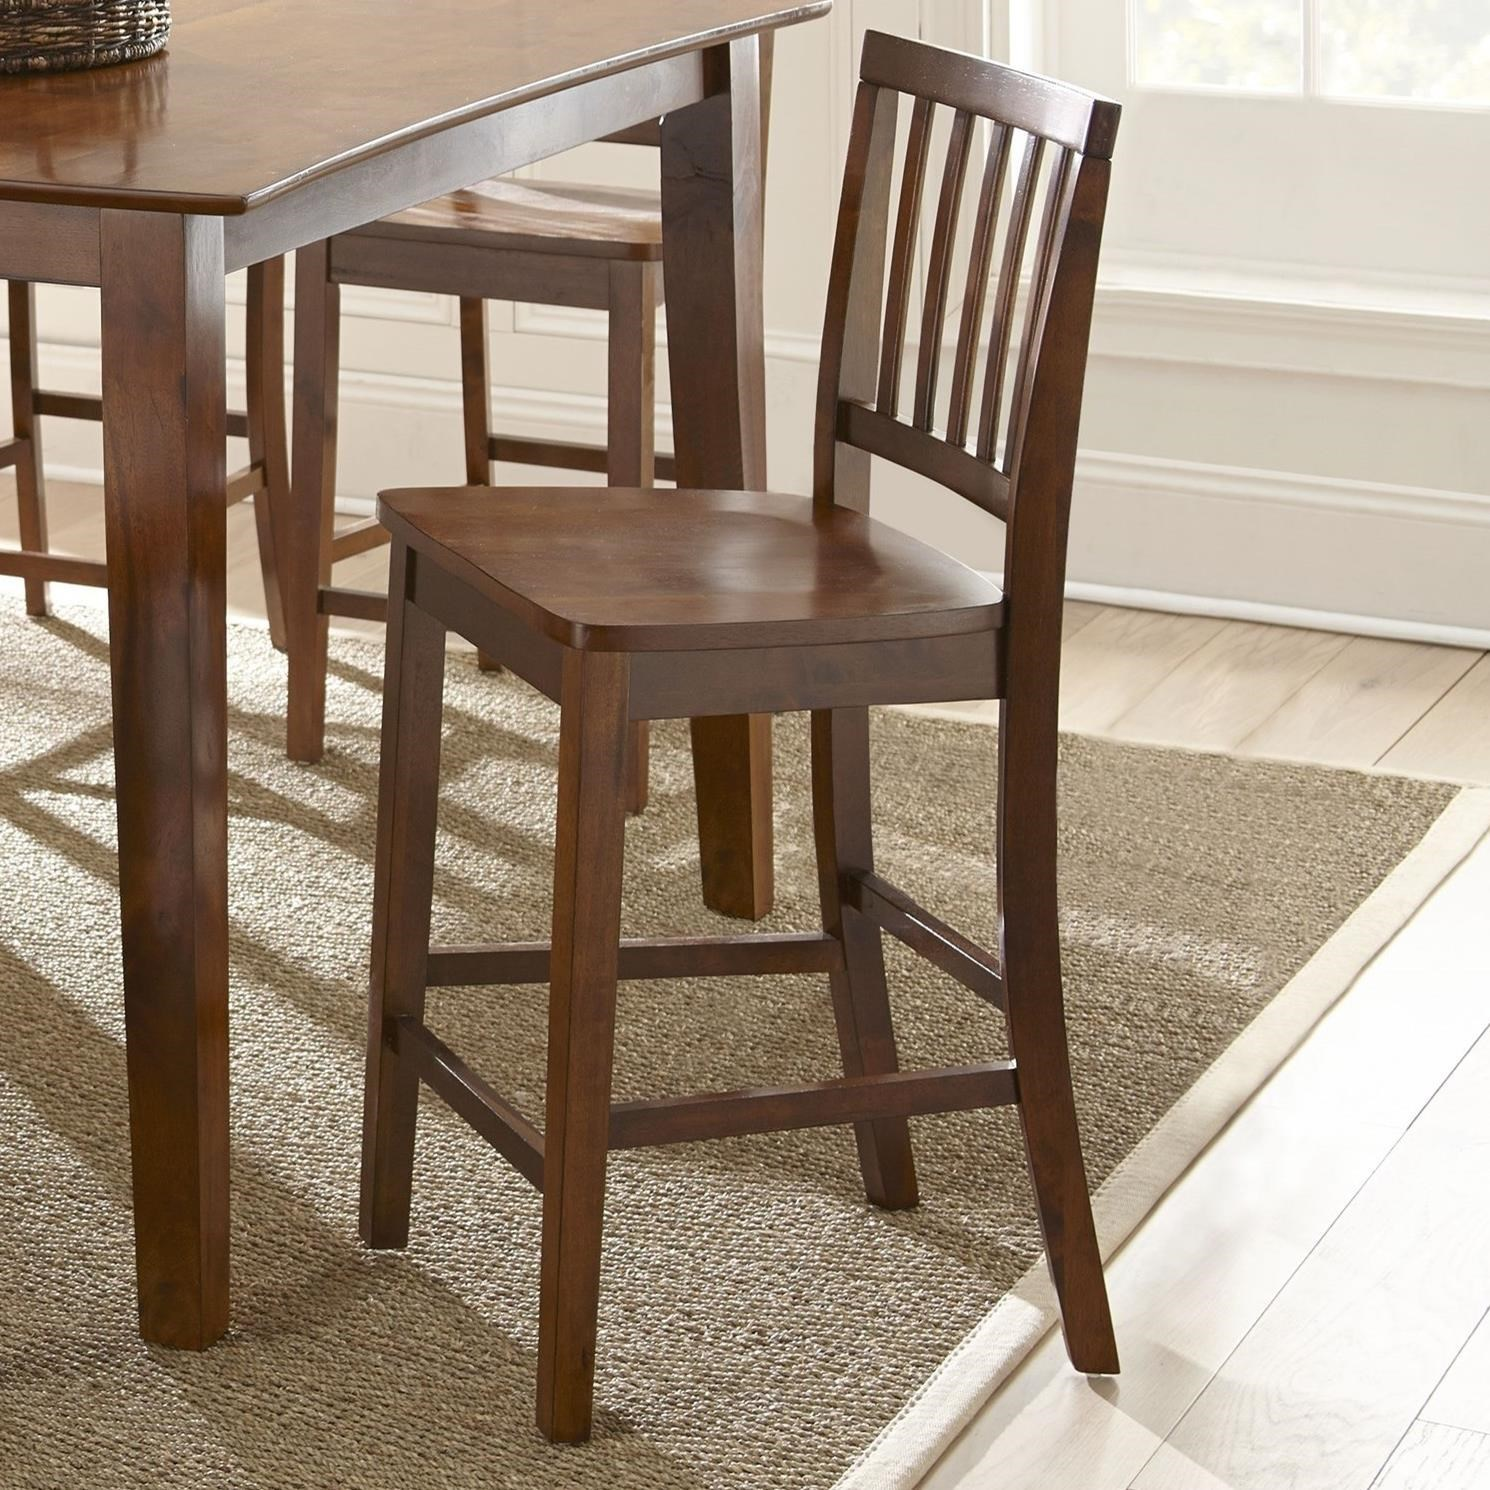 Steve Silver Branson Counter Height Chair Walkers  : products2Fstevesilver2Fcolor2Fbranson20brbr500cce b3jpgscalebothampwidth500ampheight500ampfsharpen25ampdown from www.walkersfurniture.com size 500 x 500 jpeg 76kB